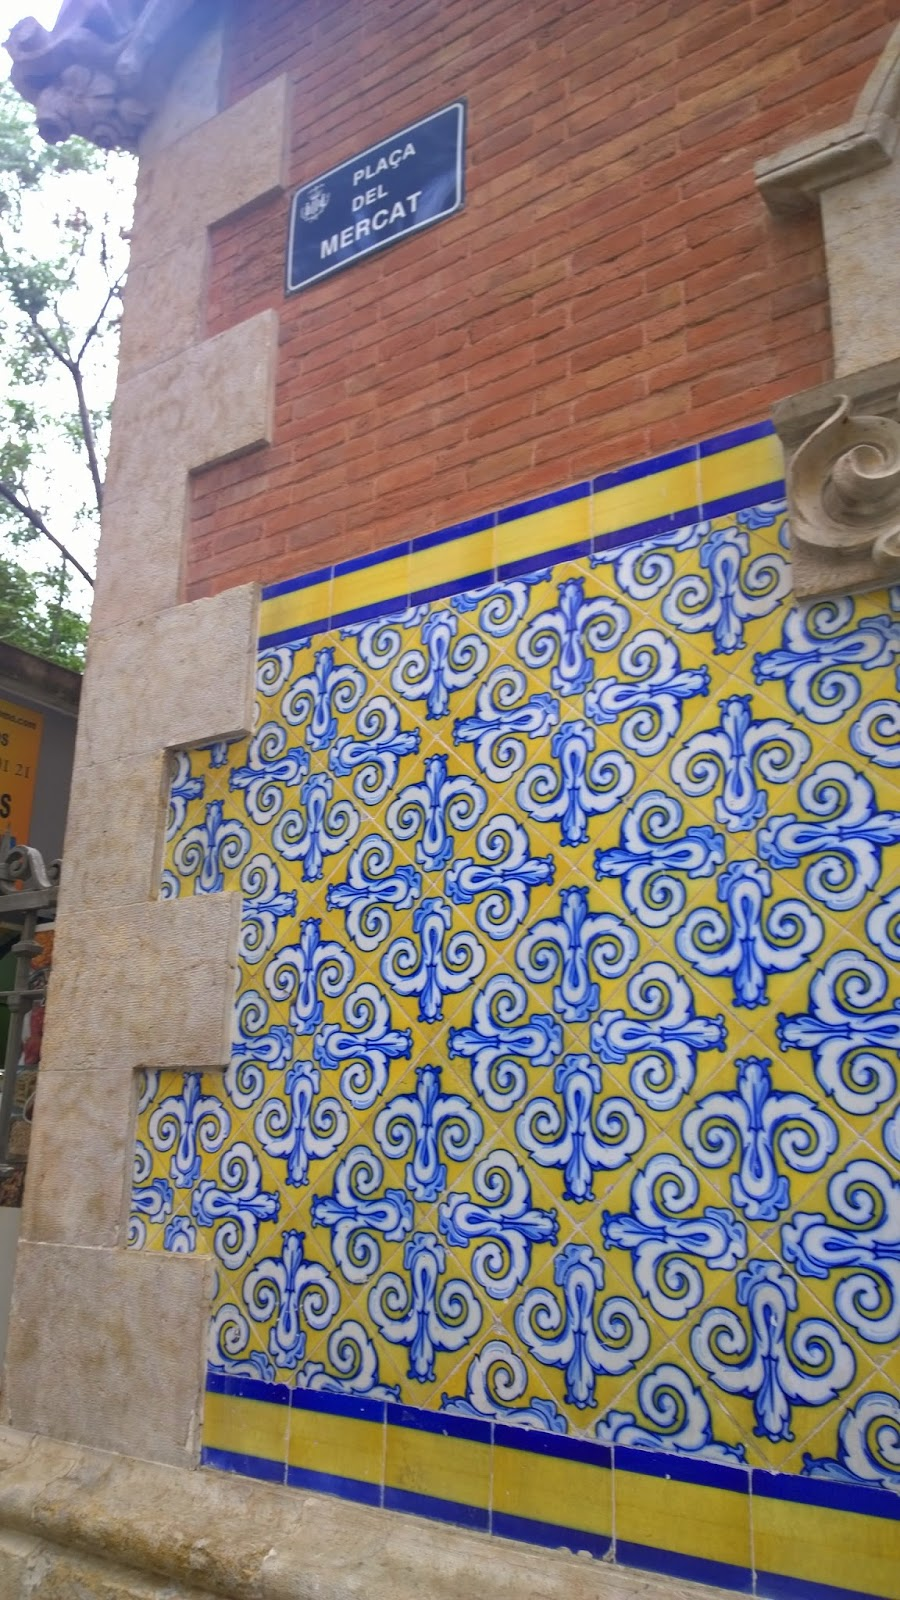 Pretty tiles everywhere